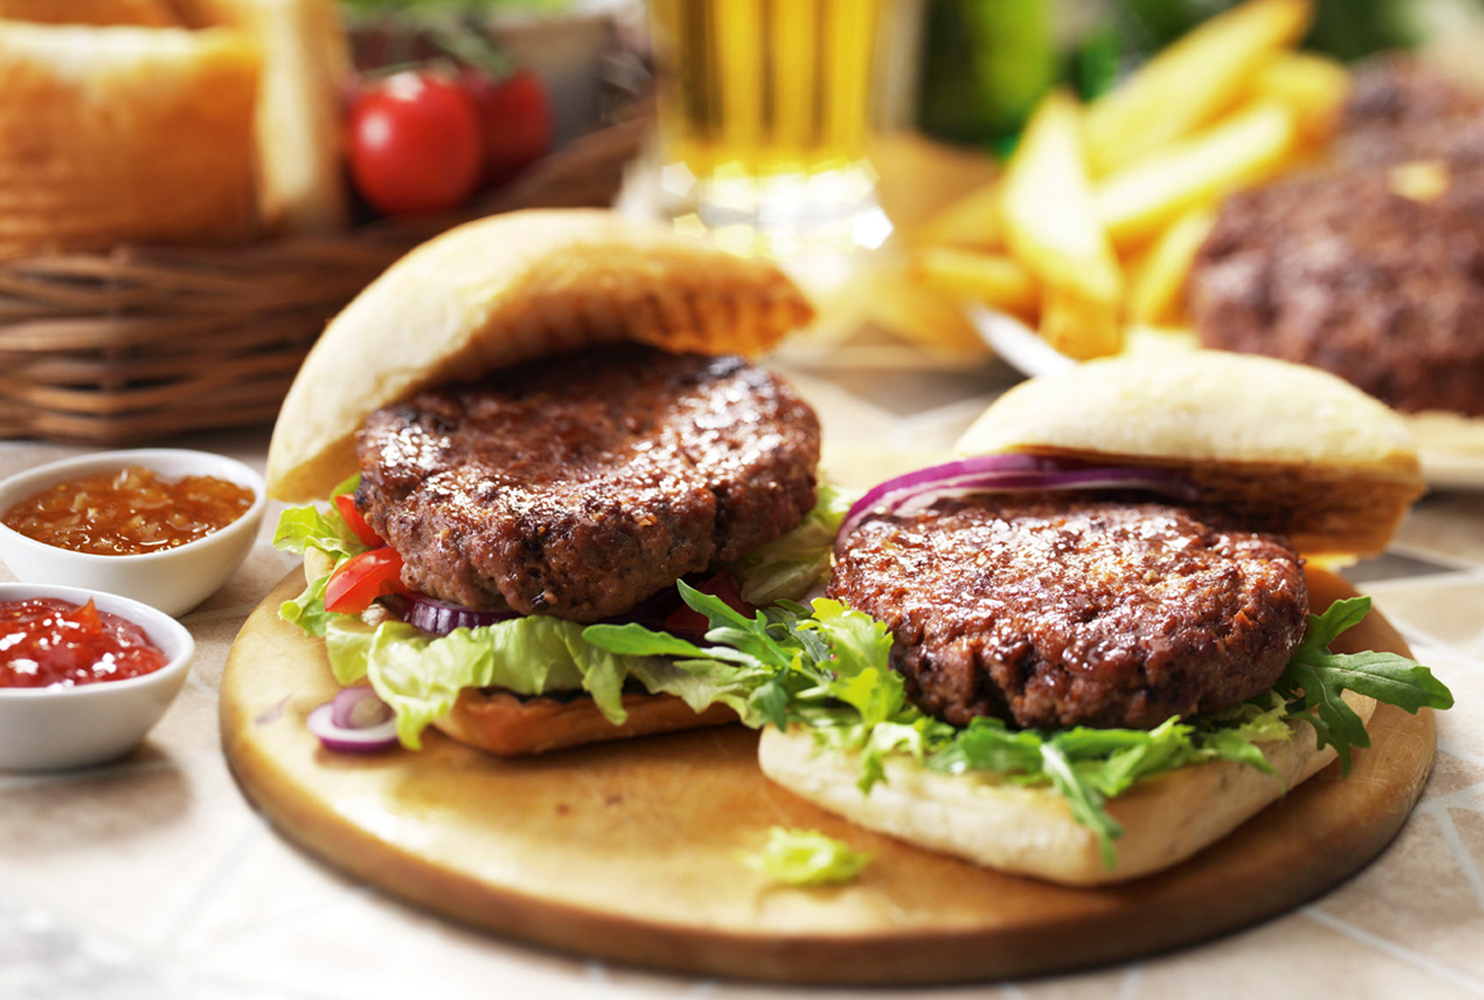 DALESMAN CHARGRILL FLAVOURED BURGER MIX